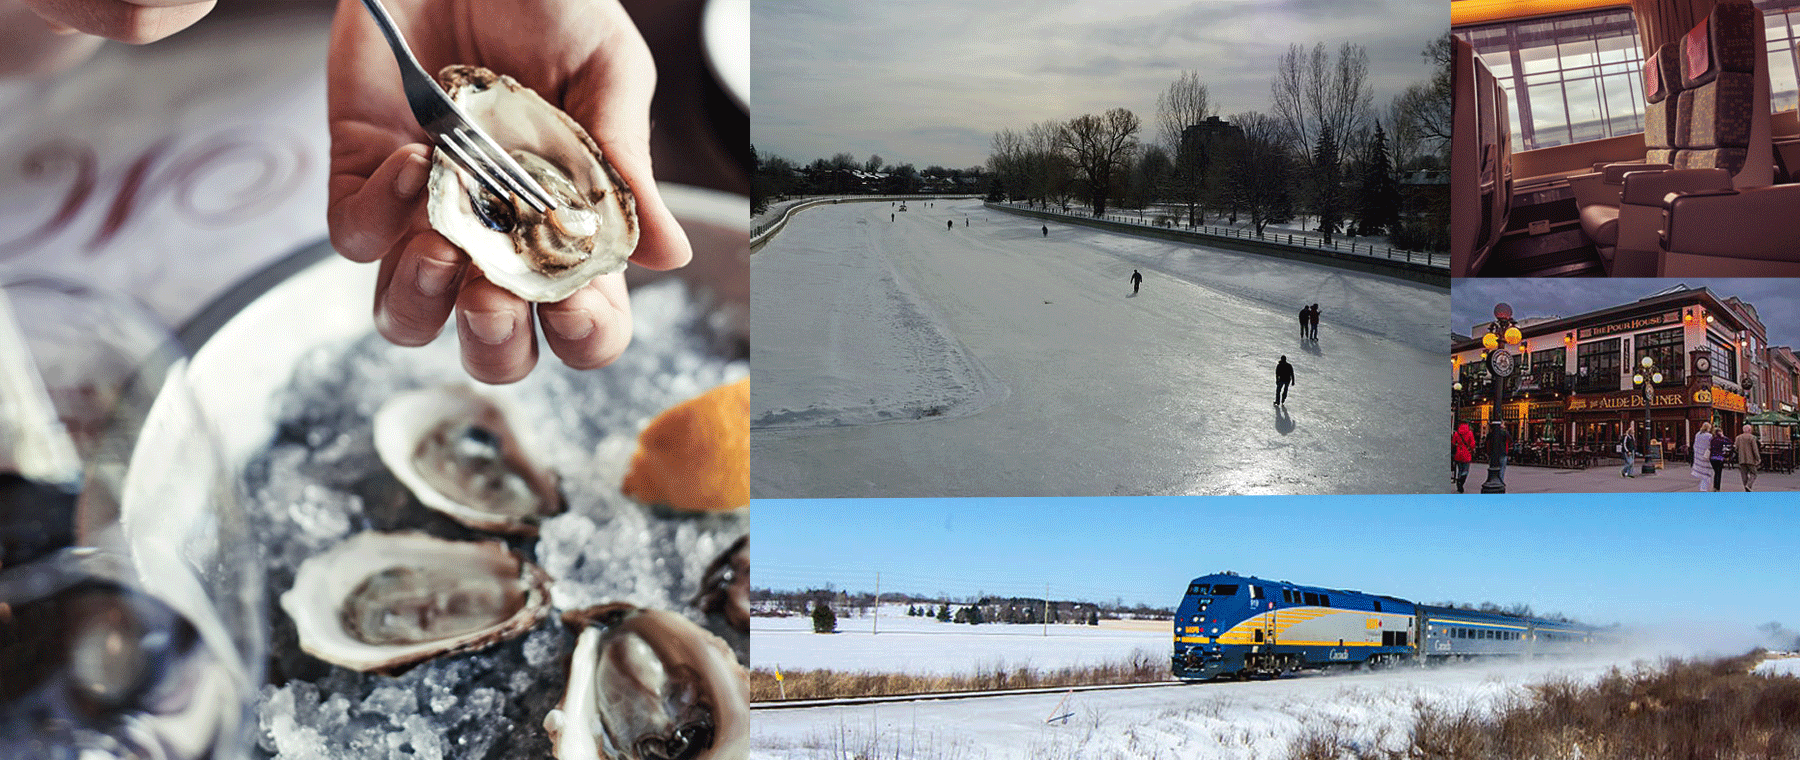 Hang with policy wonks (and eat oysters) at Metropolitan Brasserie (photo by Christian Lalonde); experience frostbite on the Rideau Canal; arrive in (dated) style by Via rail; tour the Market, where Tinder connects co-eds with bureaucrats